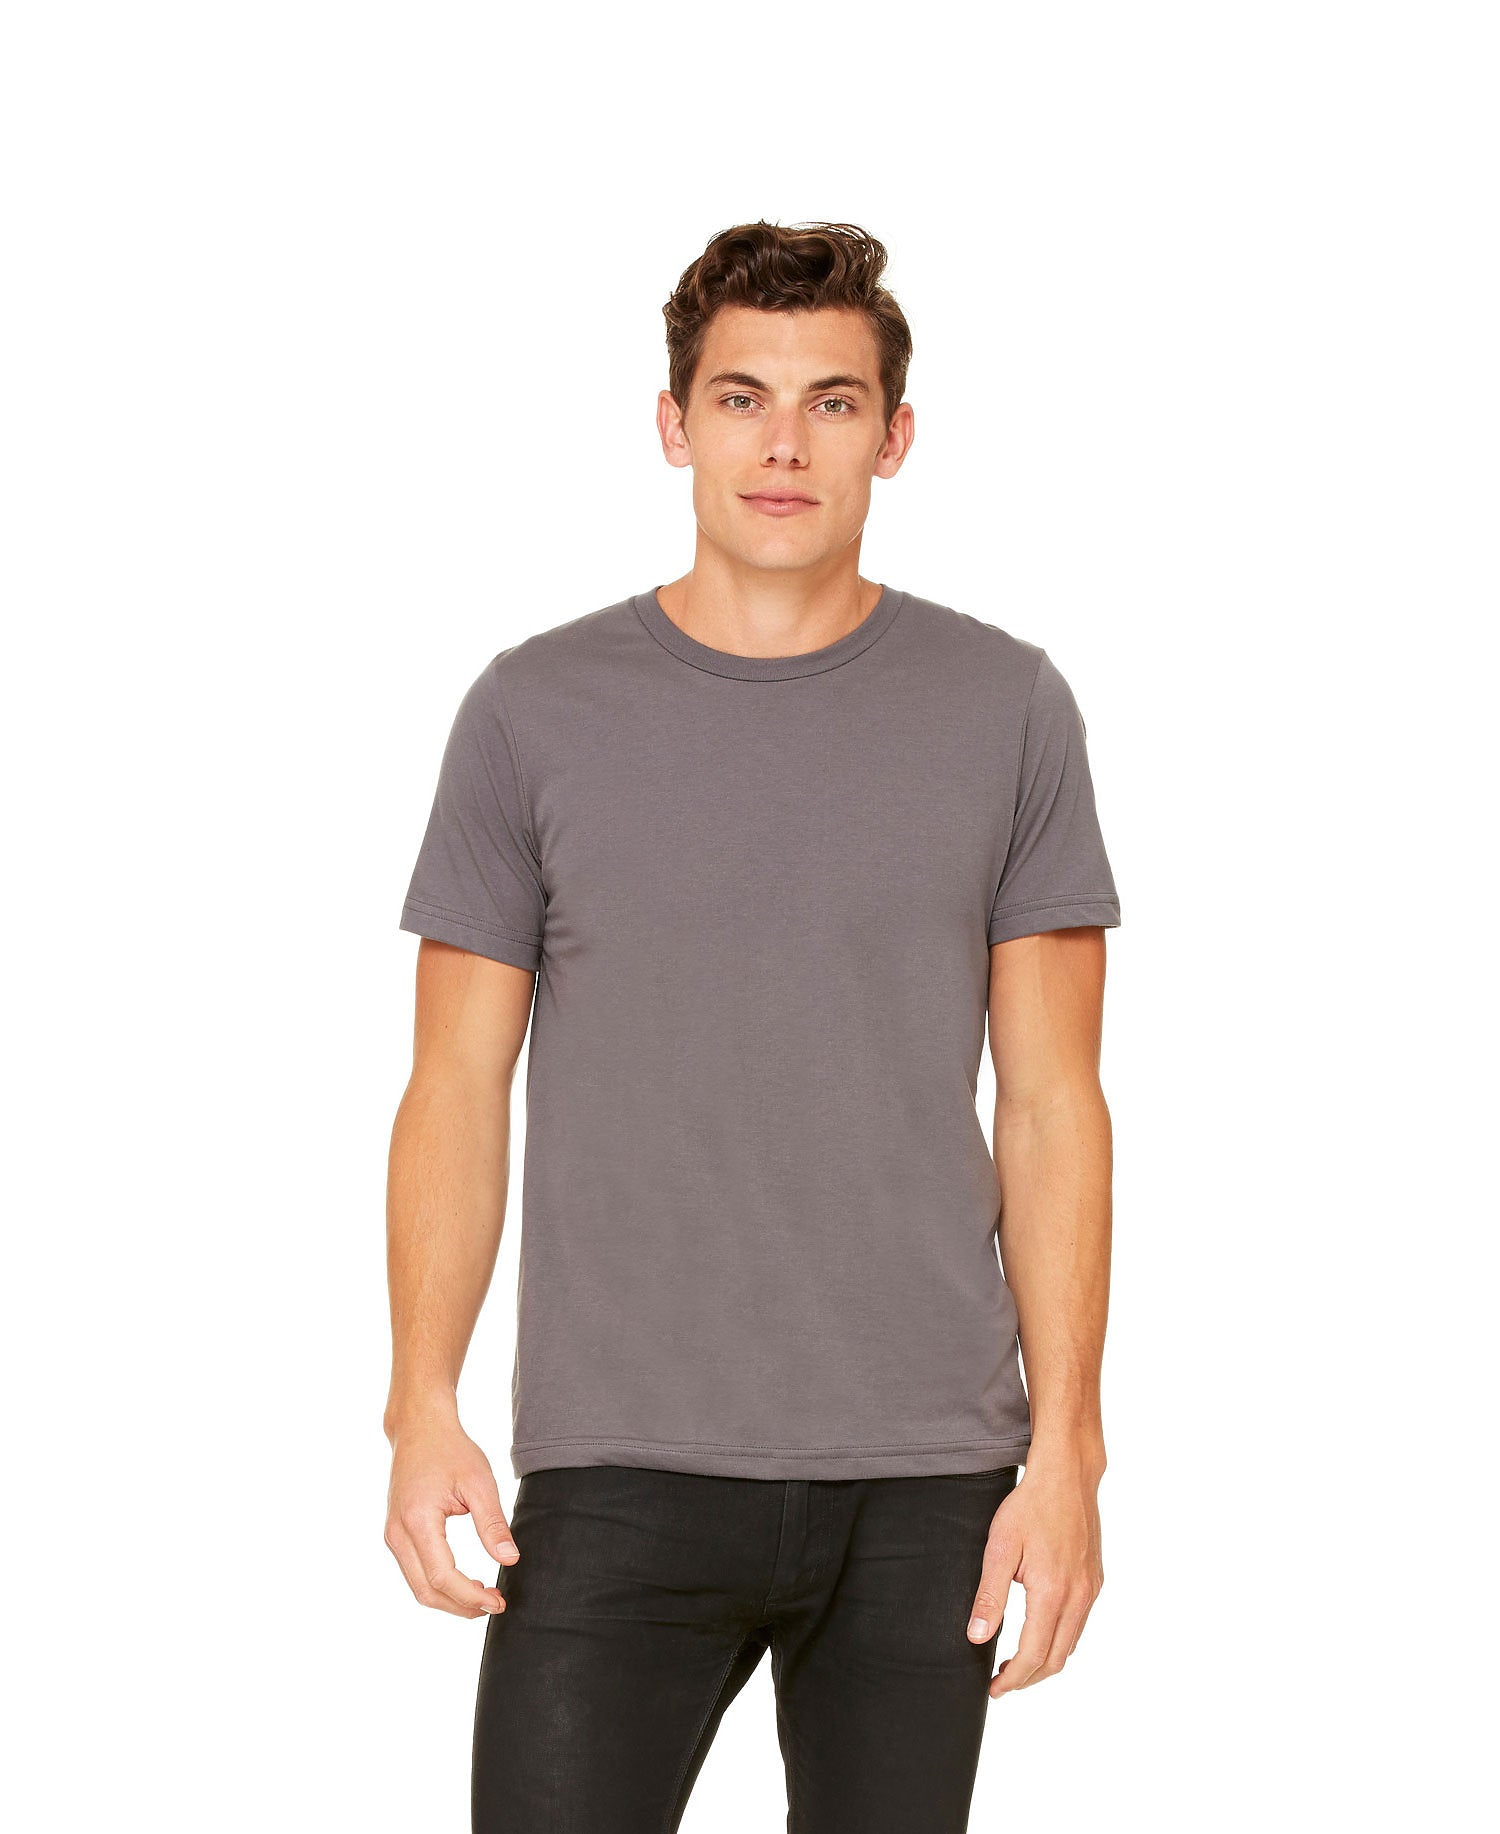 Unisex Fashion Bella+Canvas T-Shirt Unisex Polycotton Short Sleeve Unisex Tee